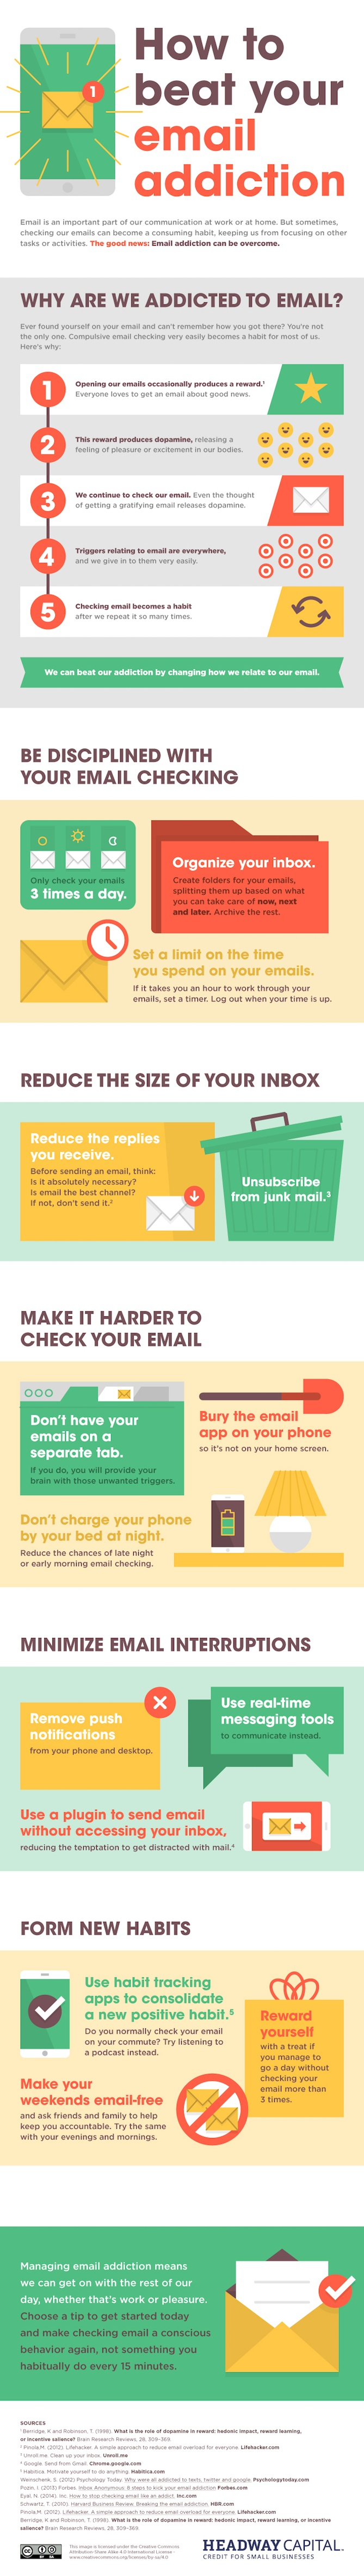 How-to-beat-your-email-addiction.jpg